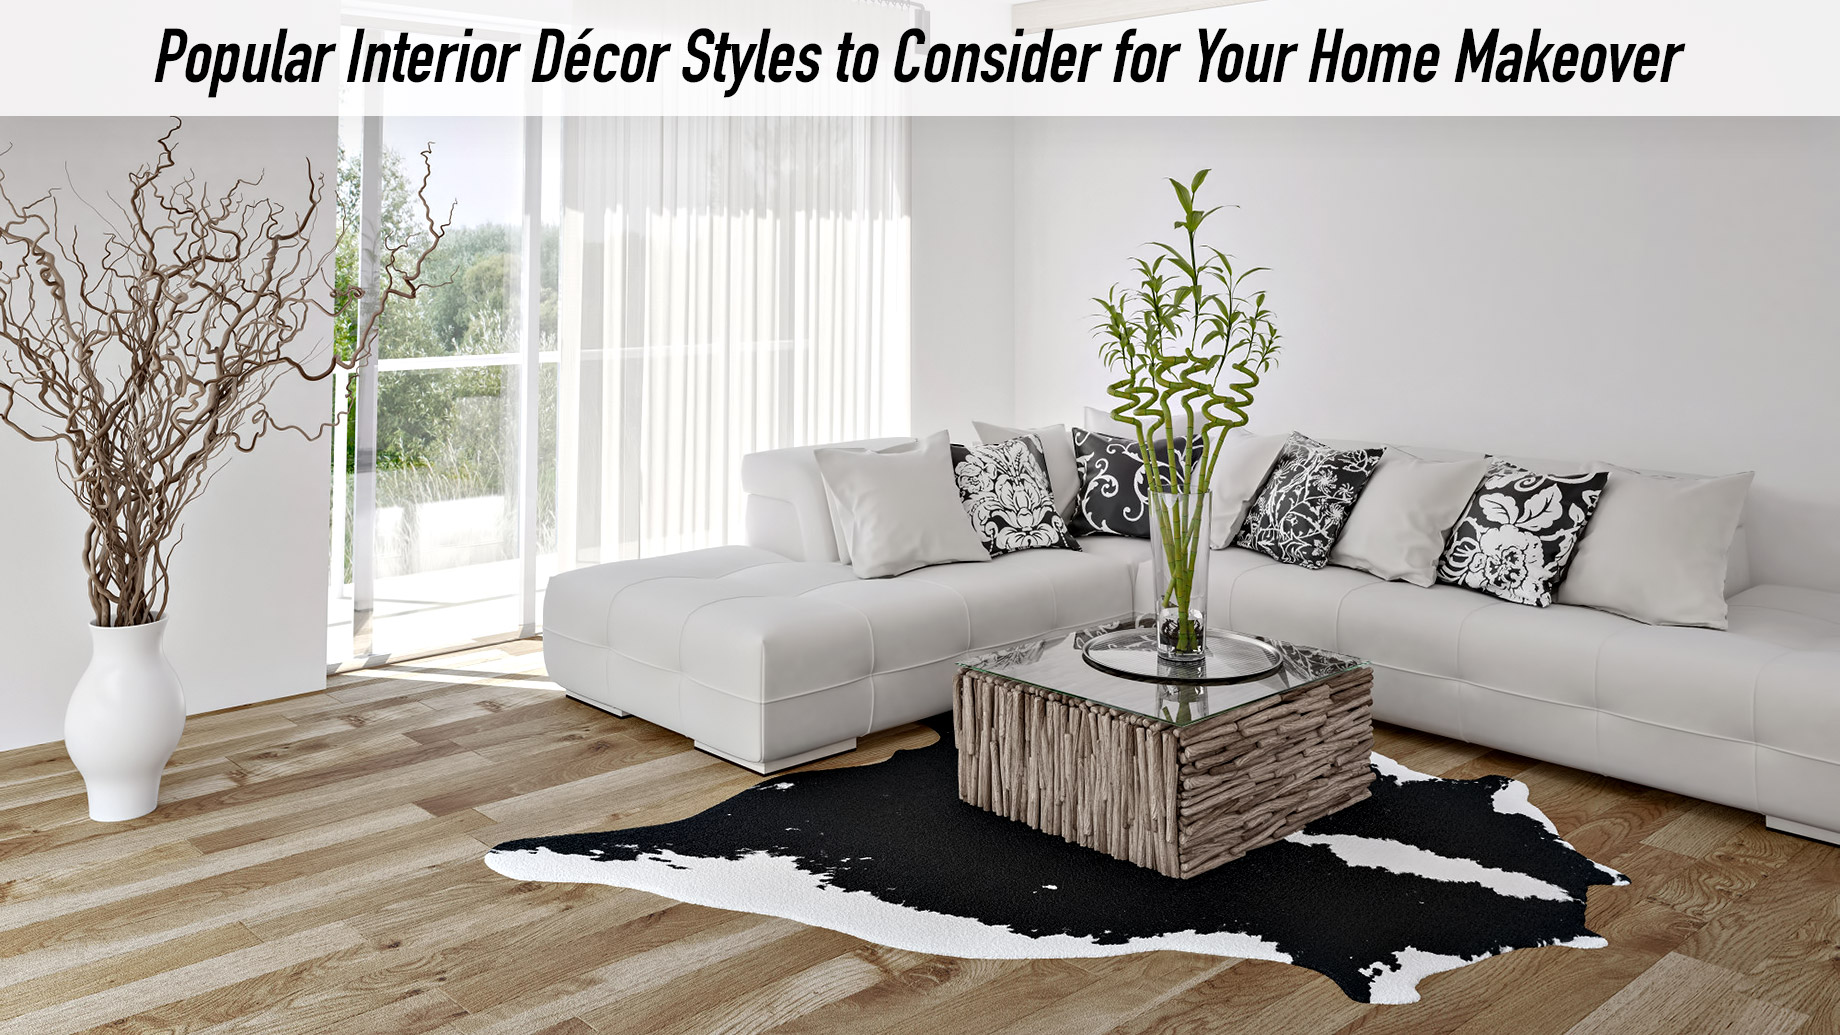 Home Decor Styles